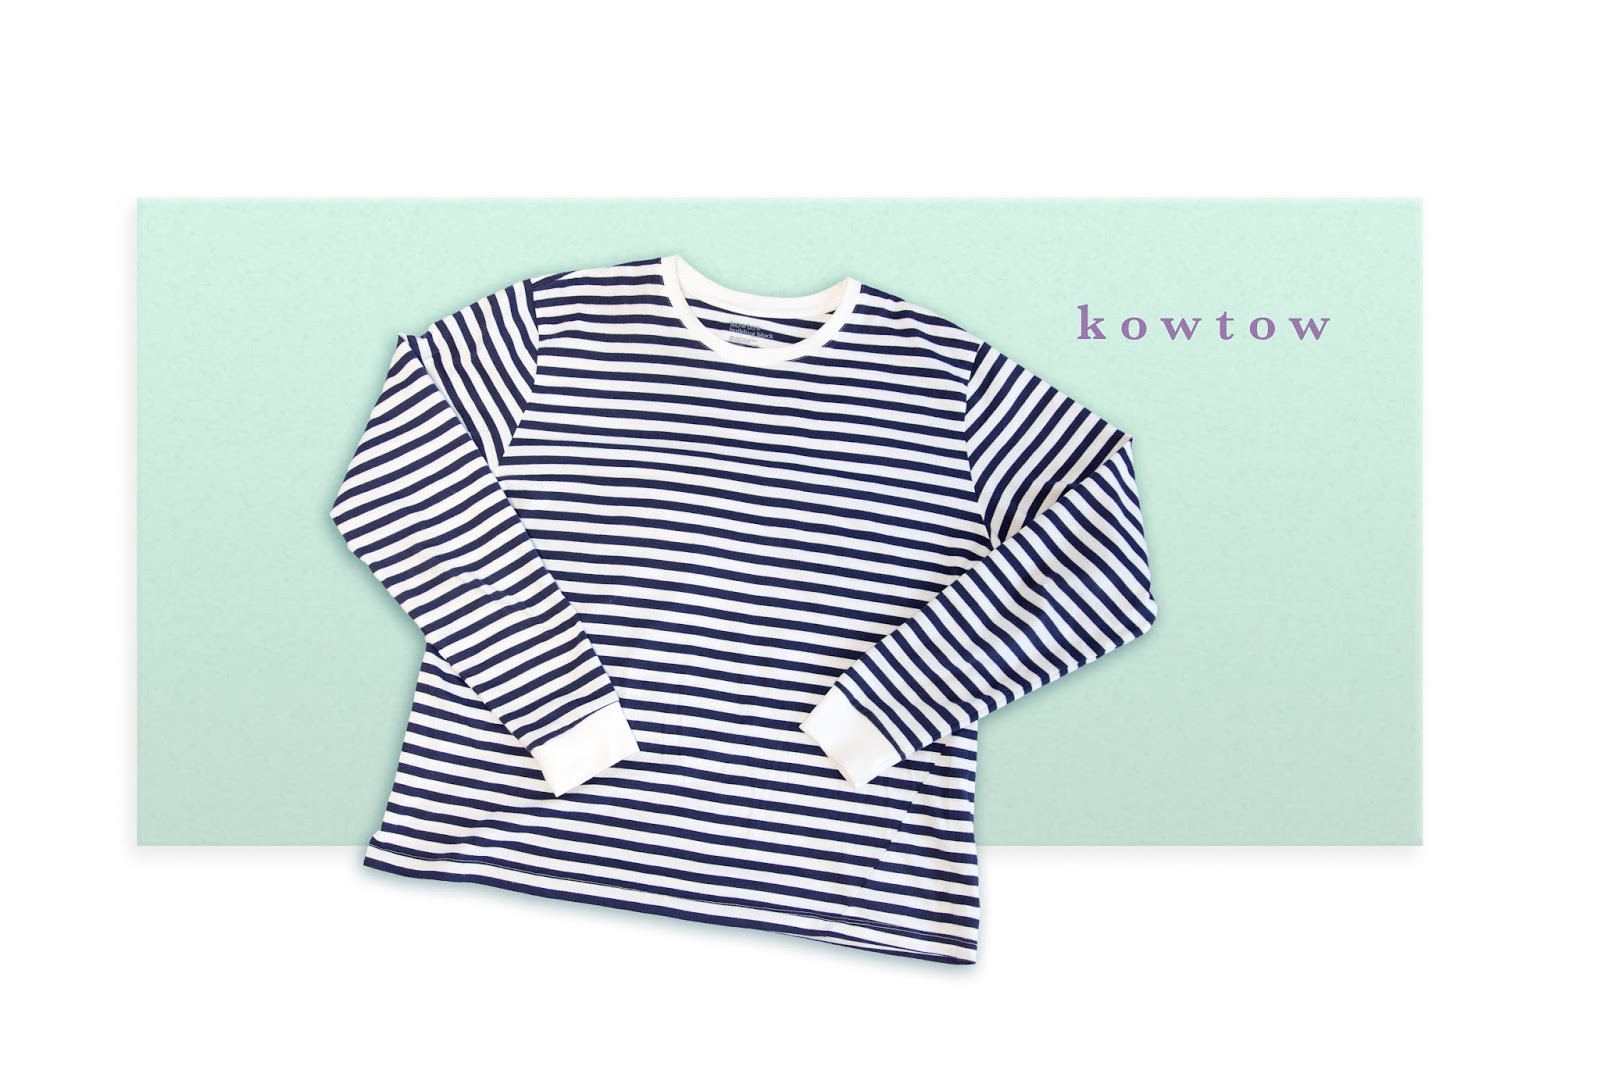 kowtow striped top2.jpg